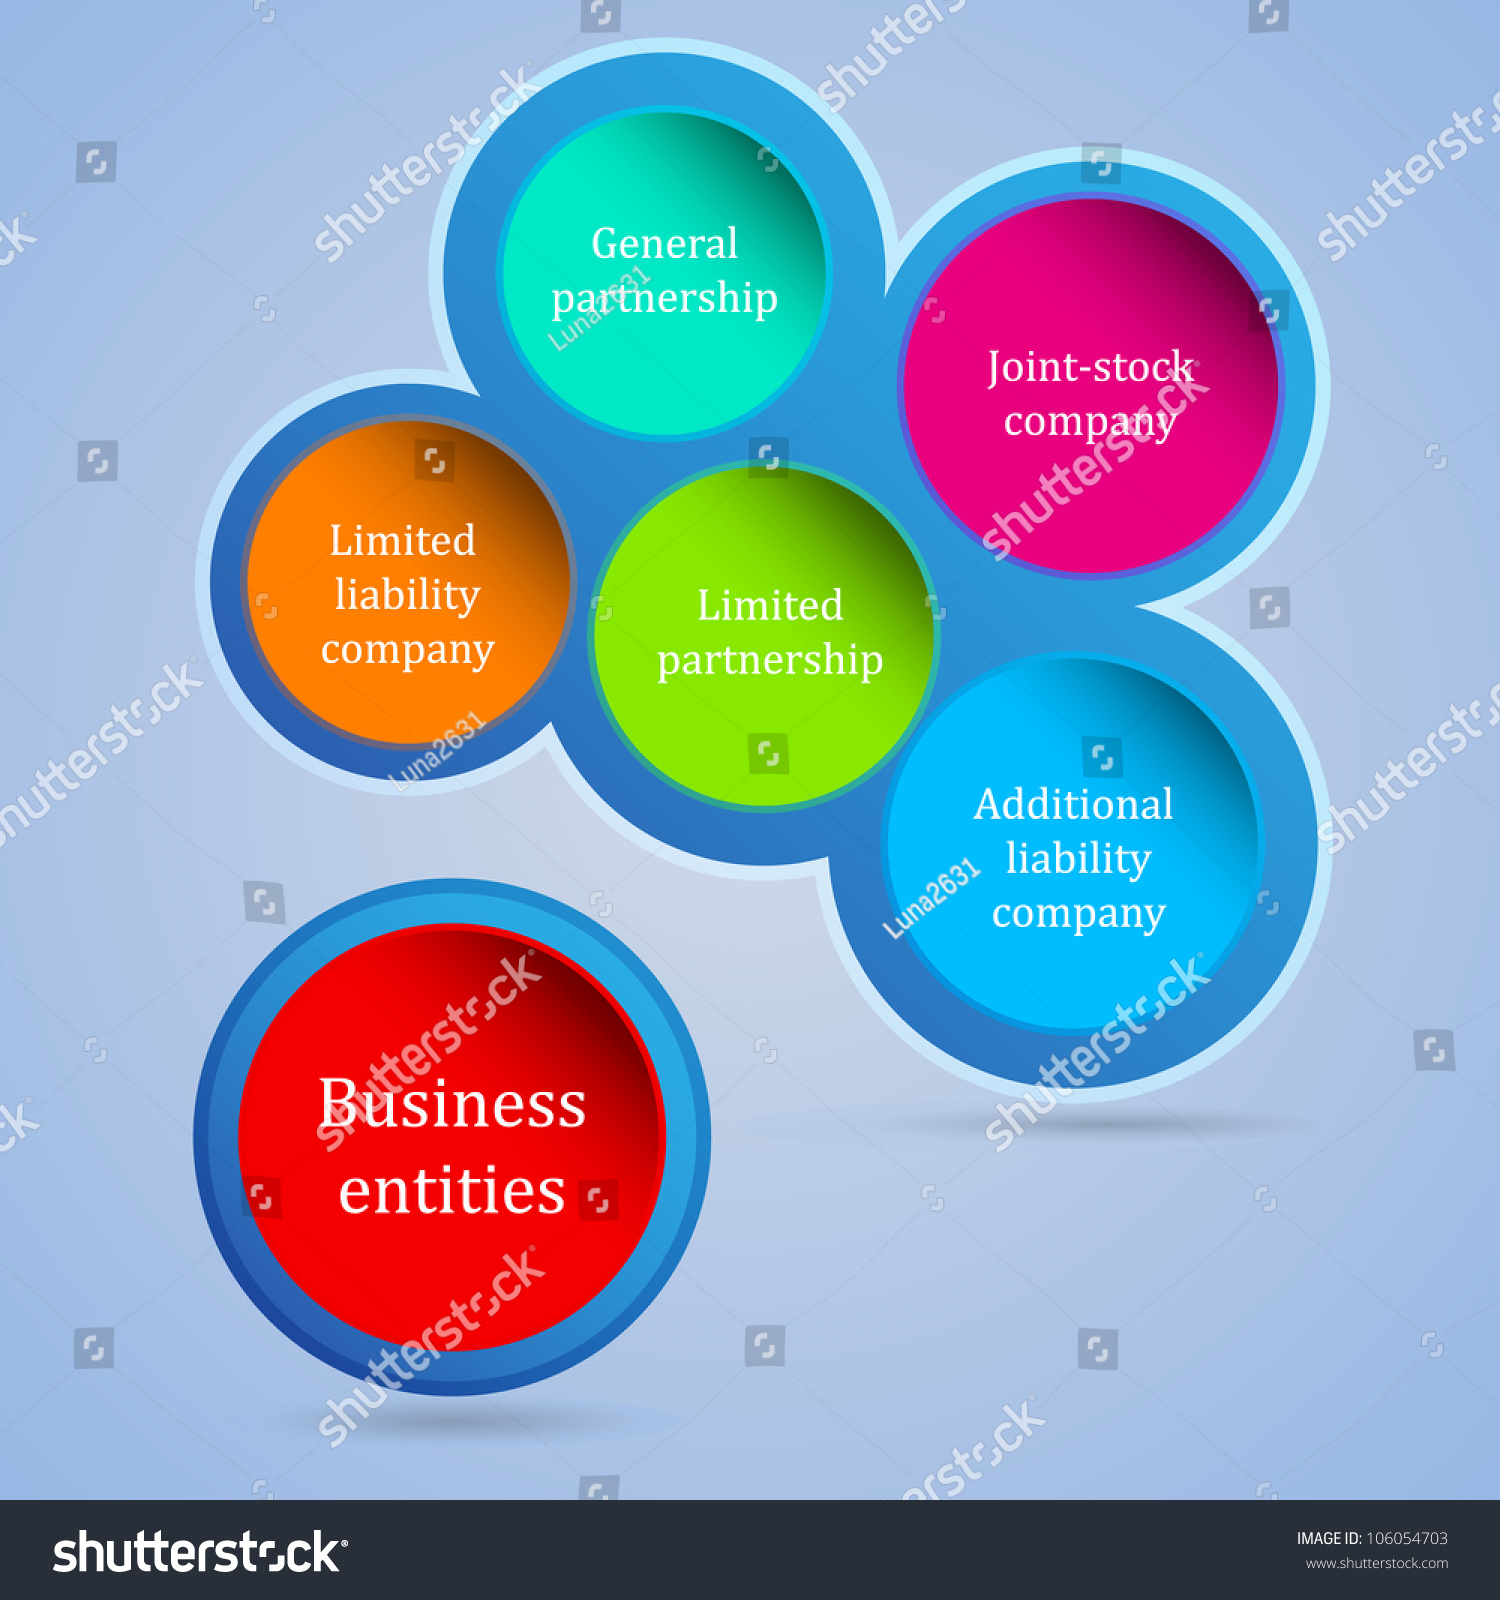 Royalty Free Business Entities Diagram Vector 106054703 Stock